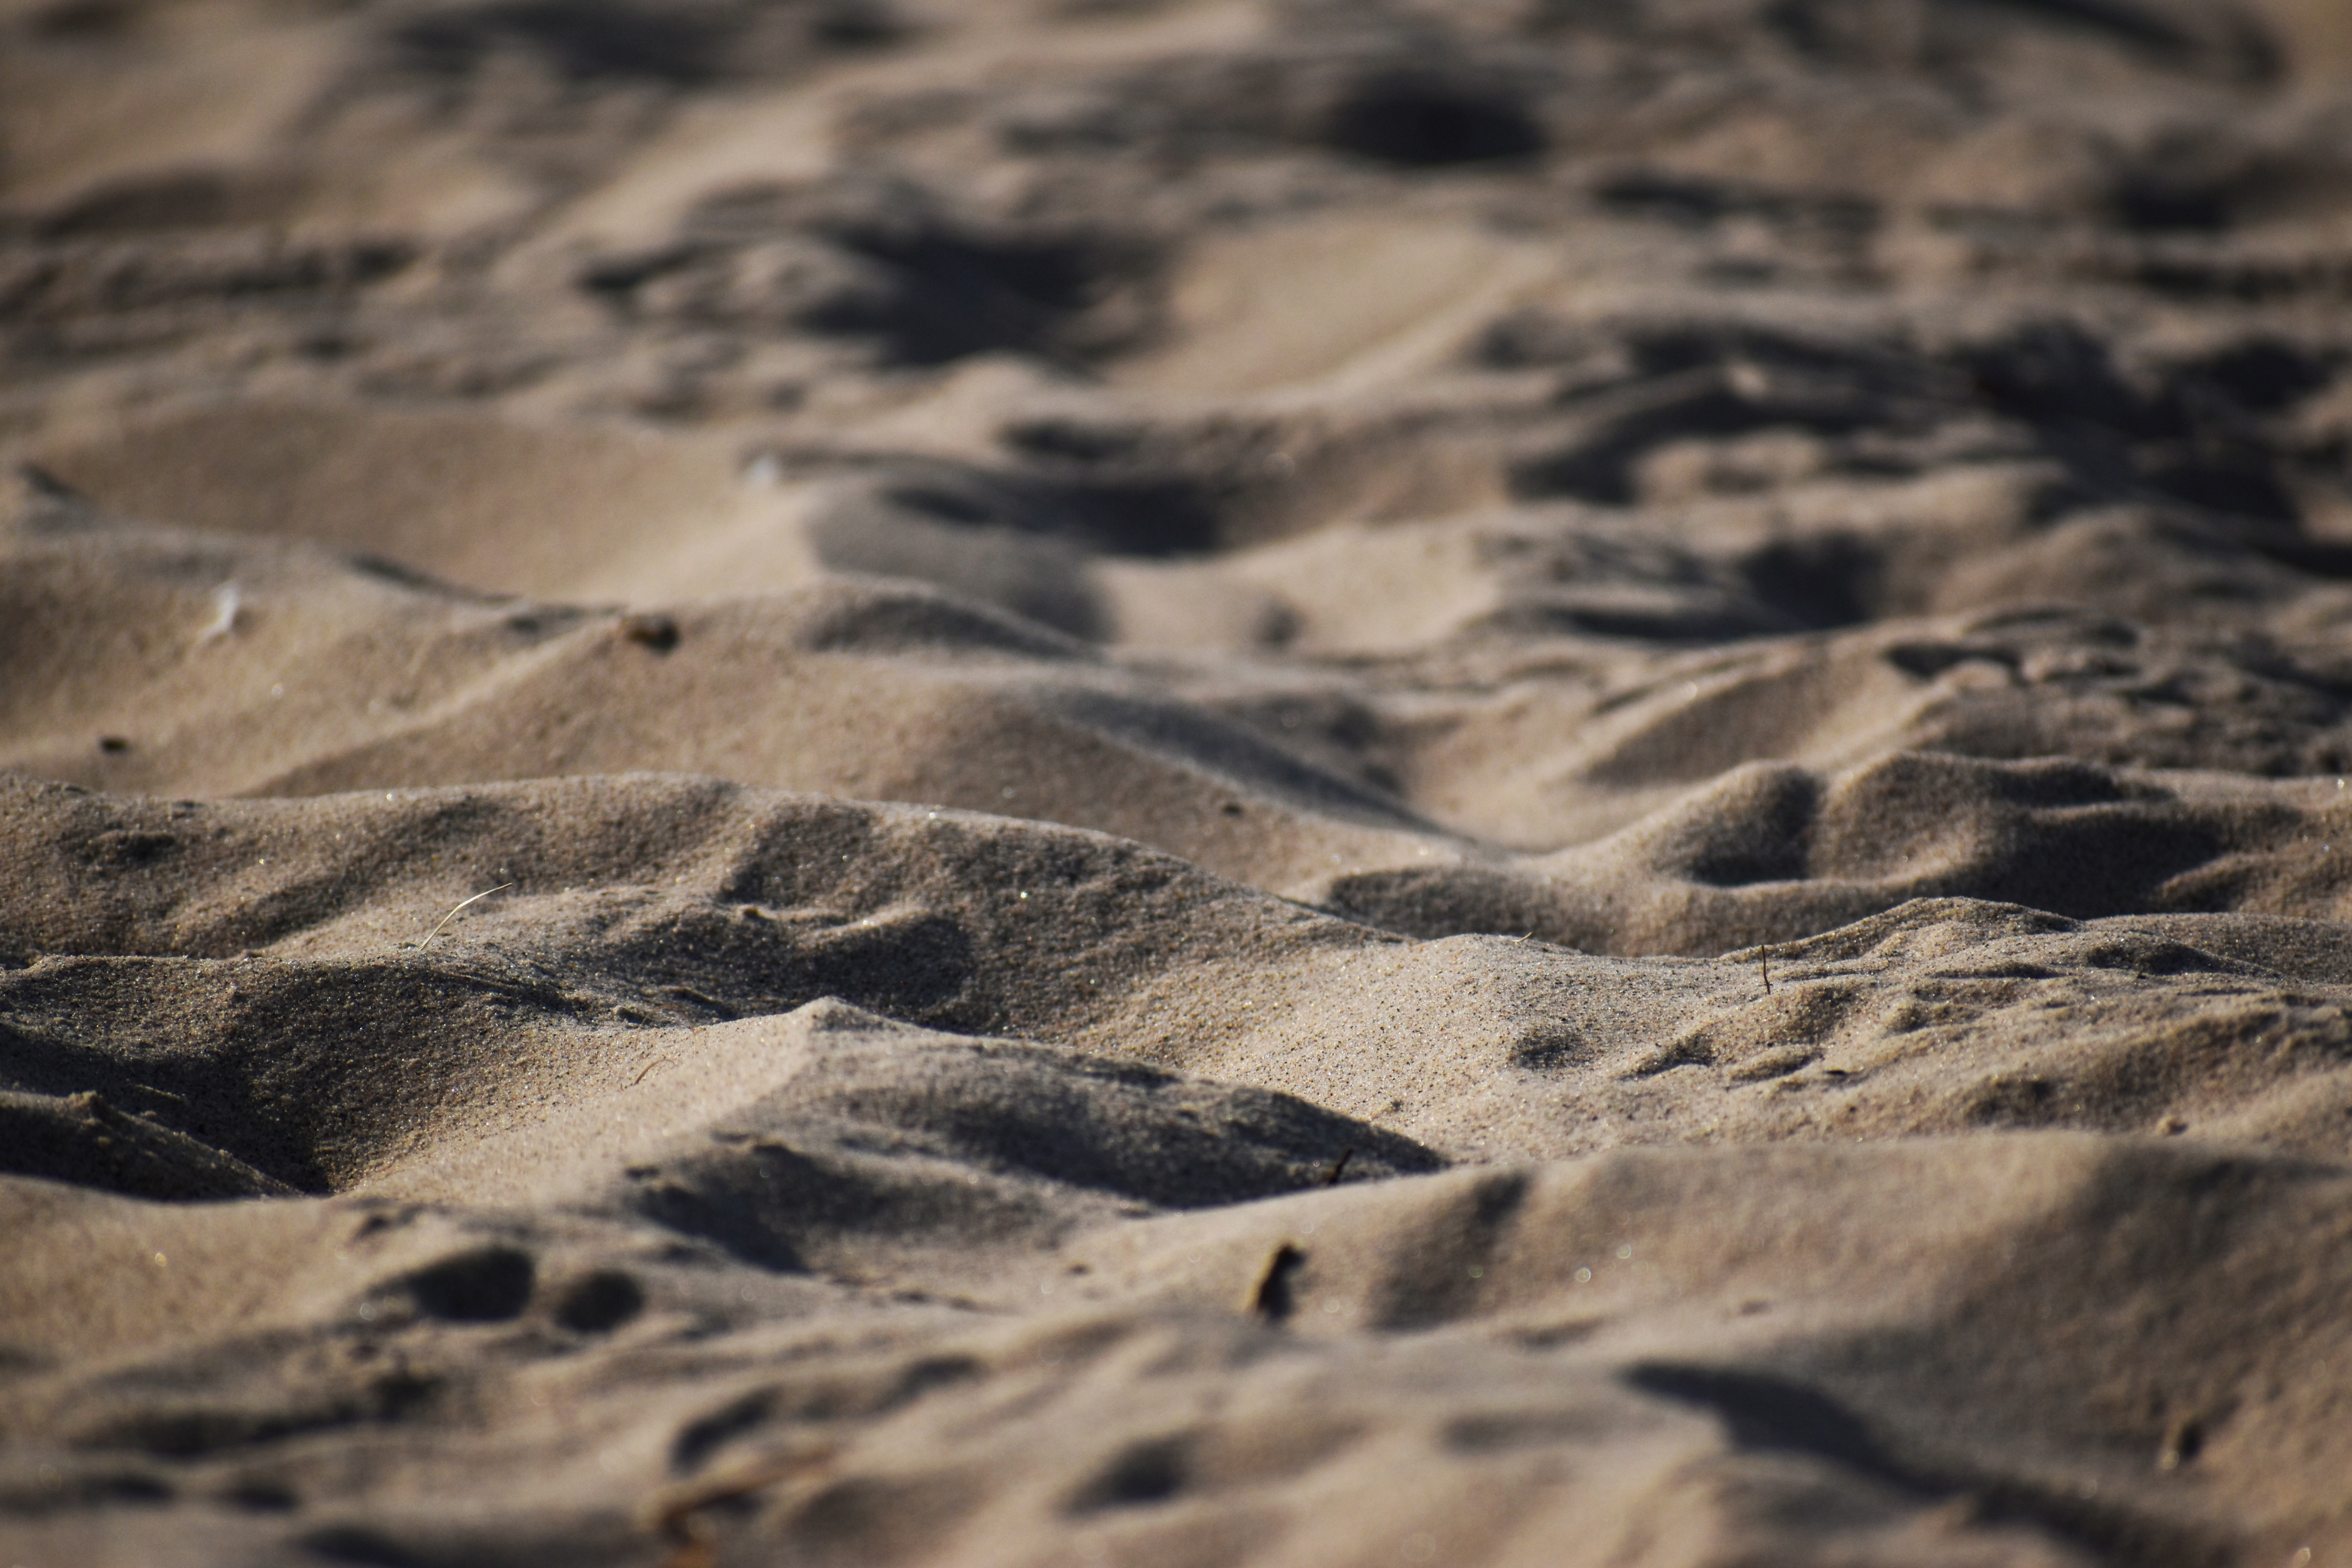 close up photo of sand